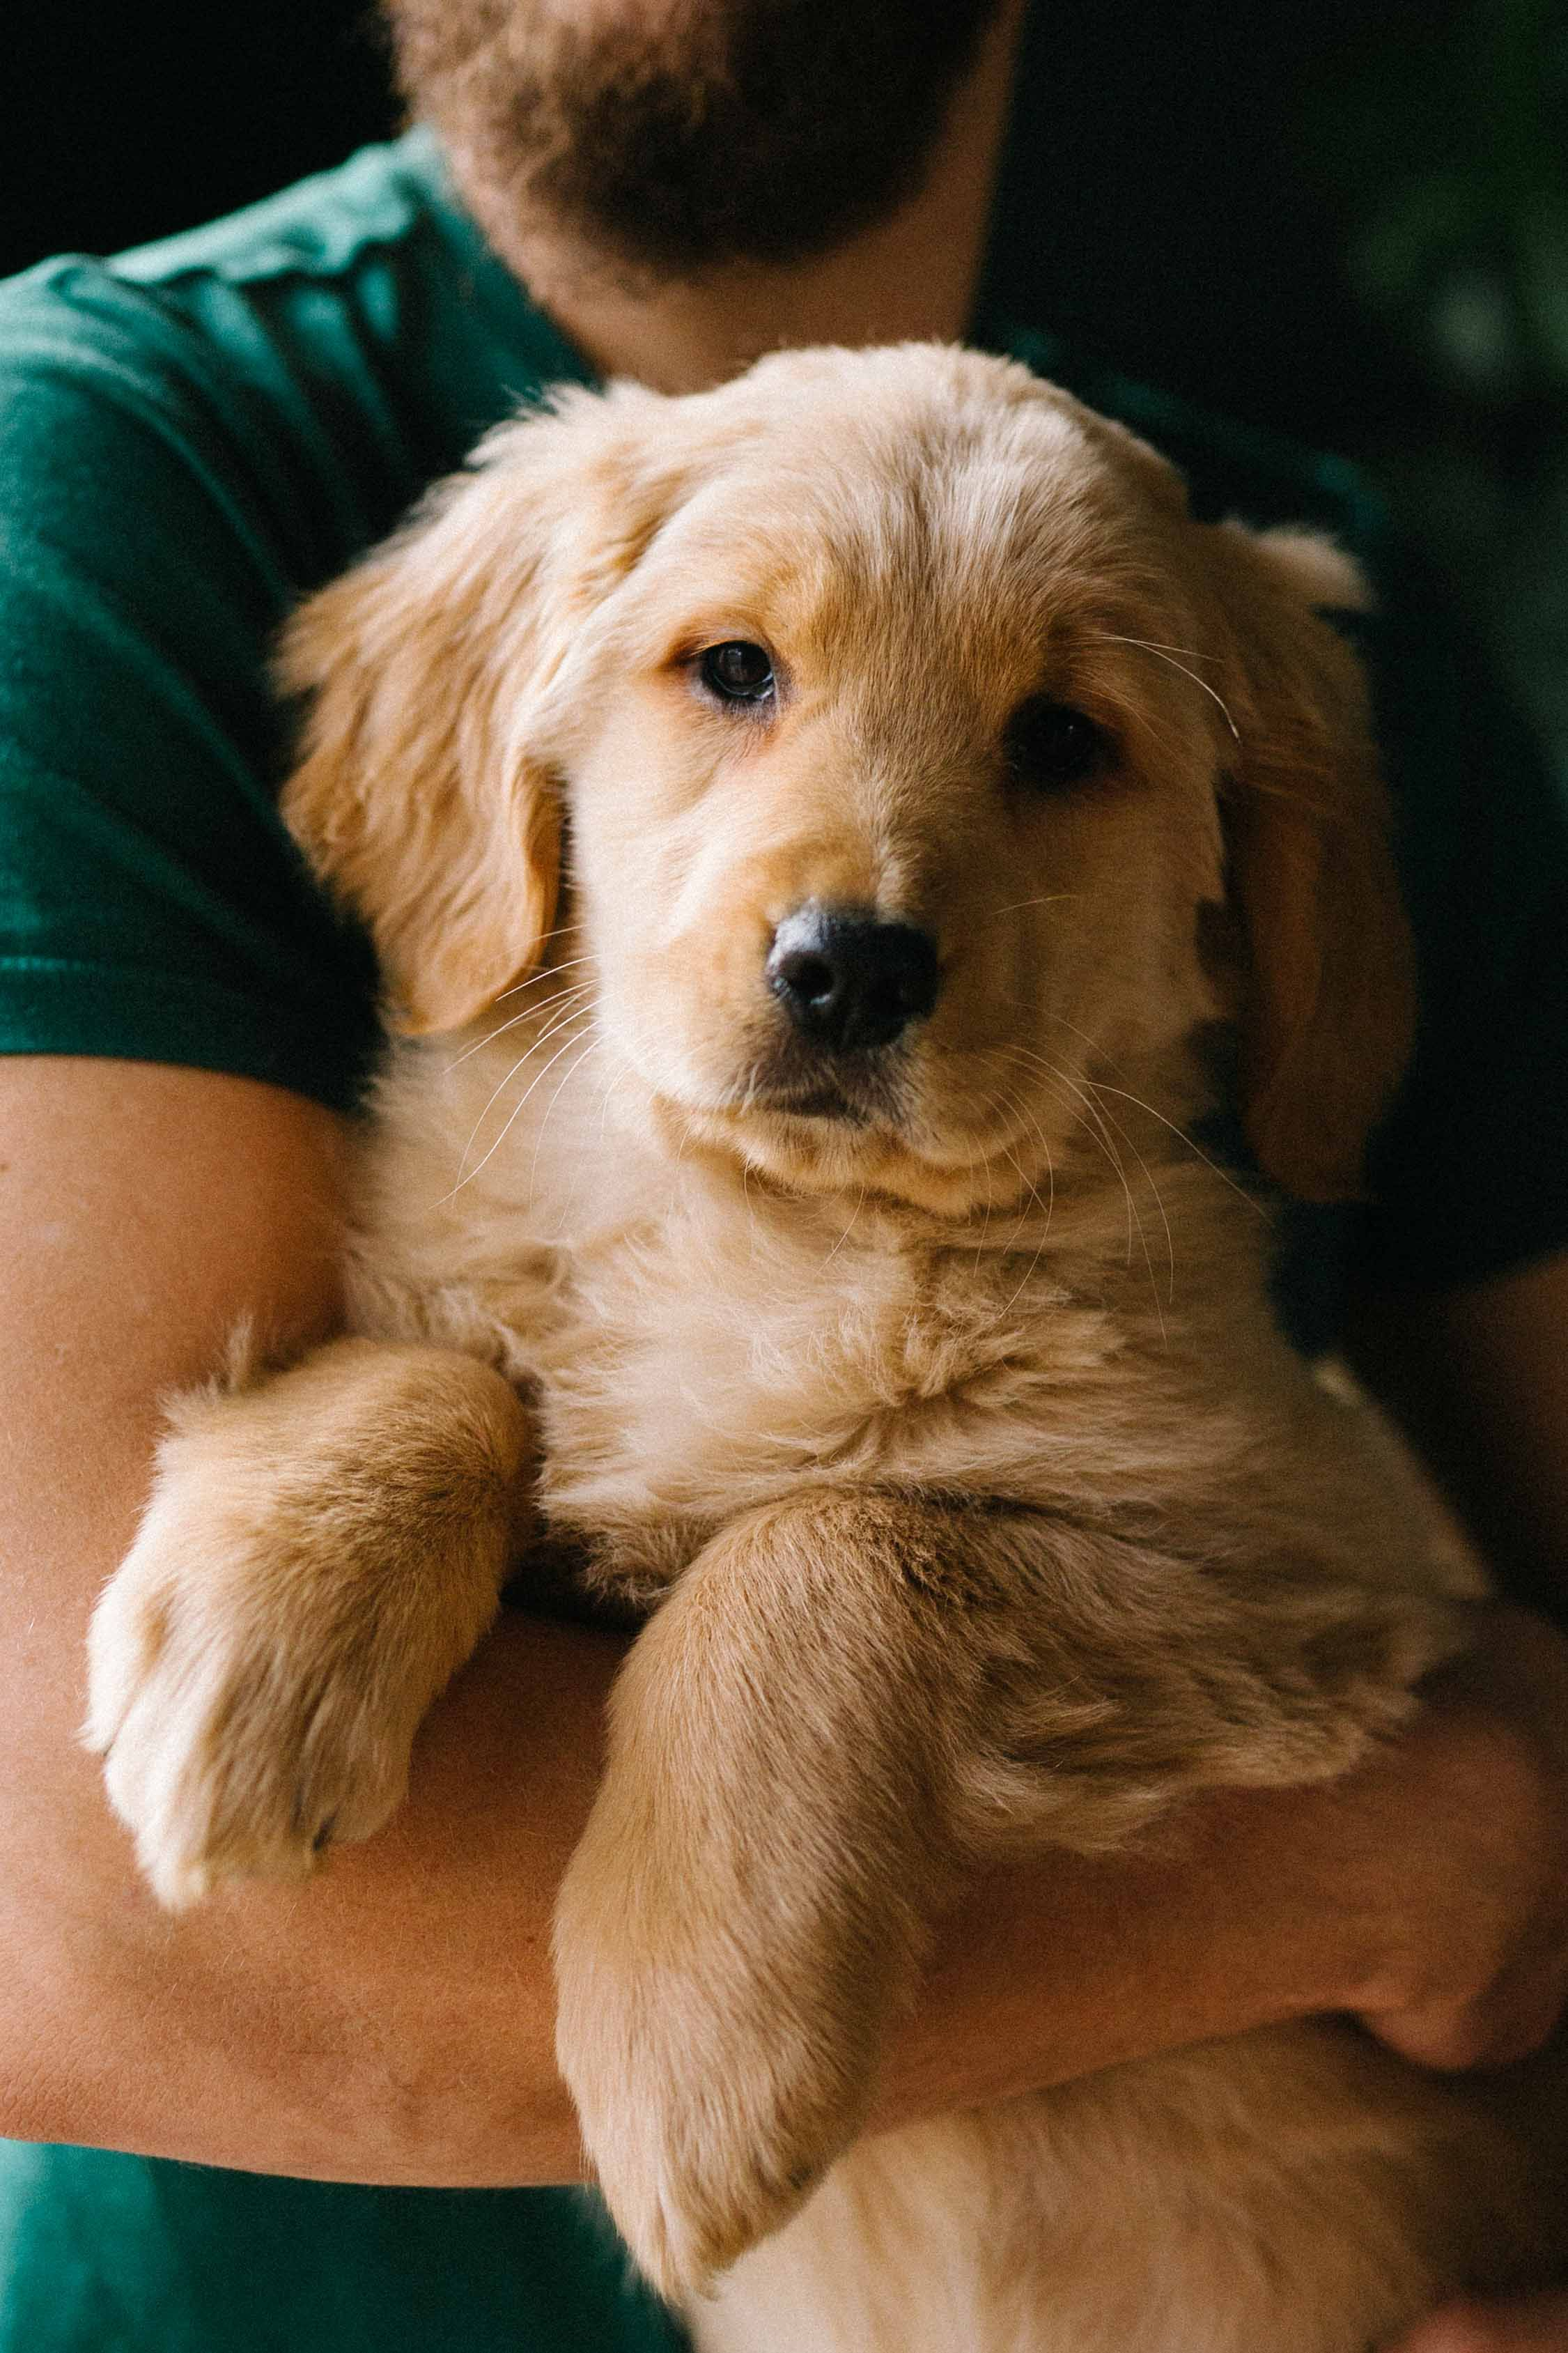 GoldenLove 😘💓 Goldens are Outgoing, Trustworthy, and